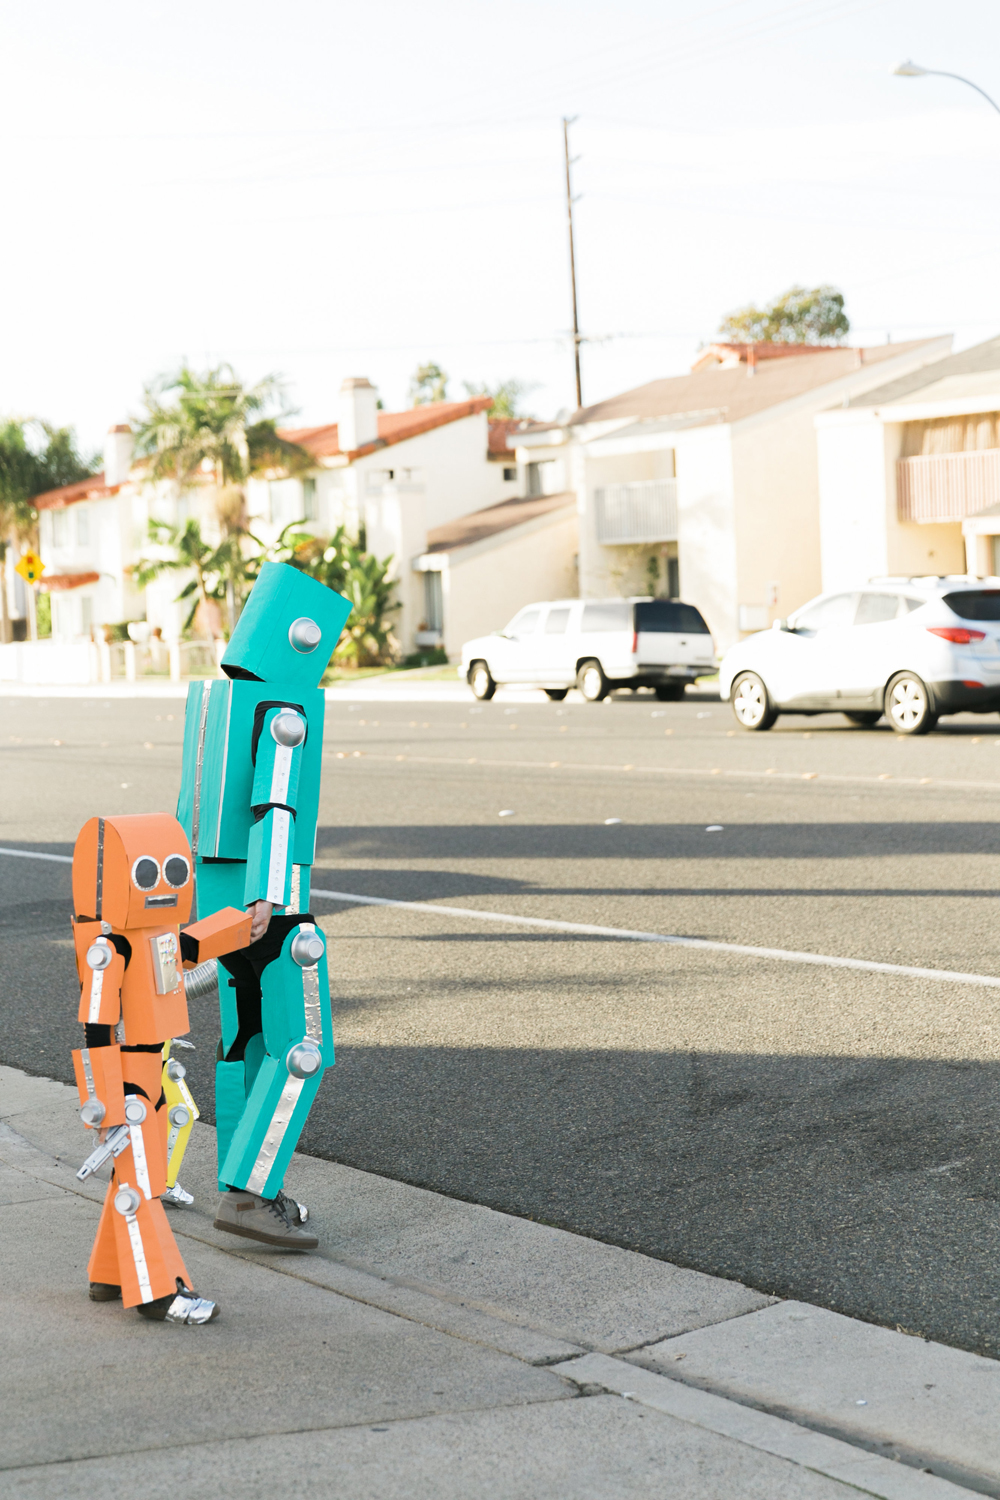 View More: http://radandhappy.pass.us/walkfamilyrobots